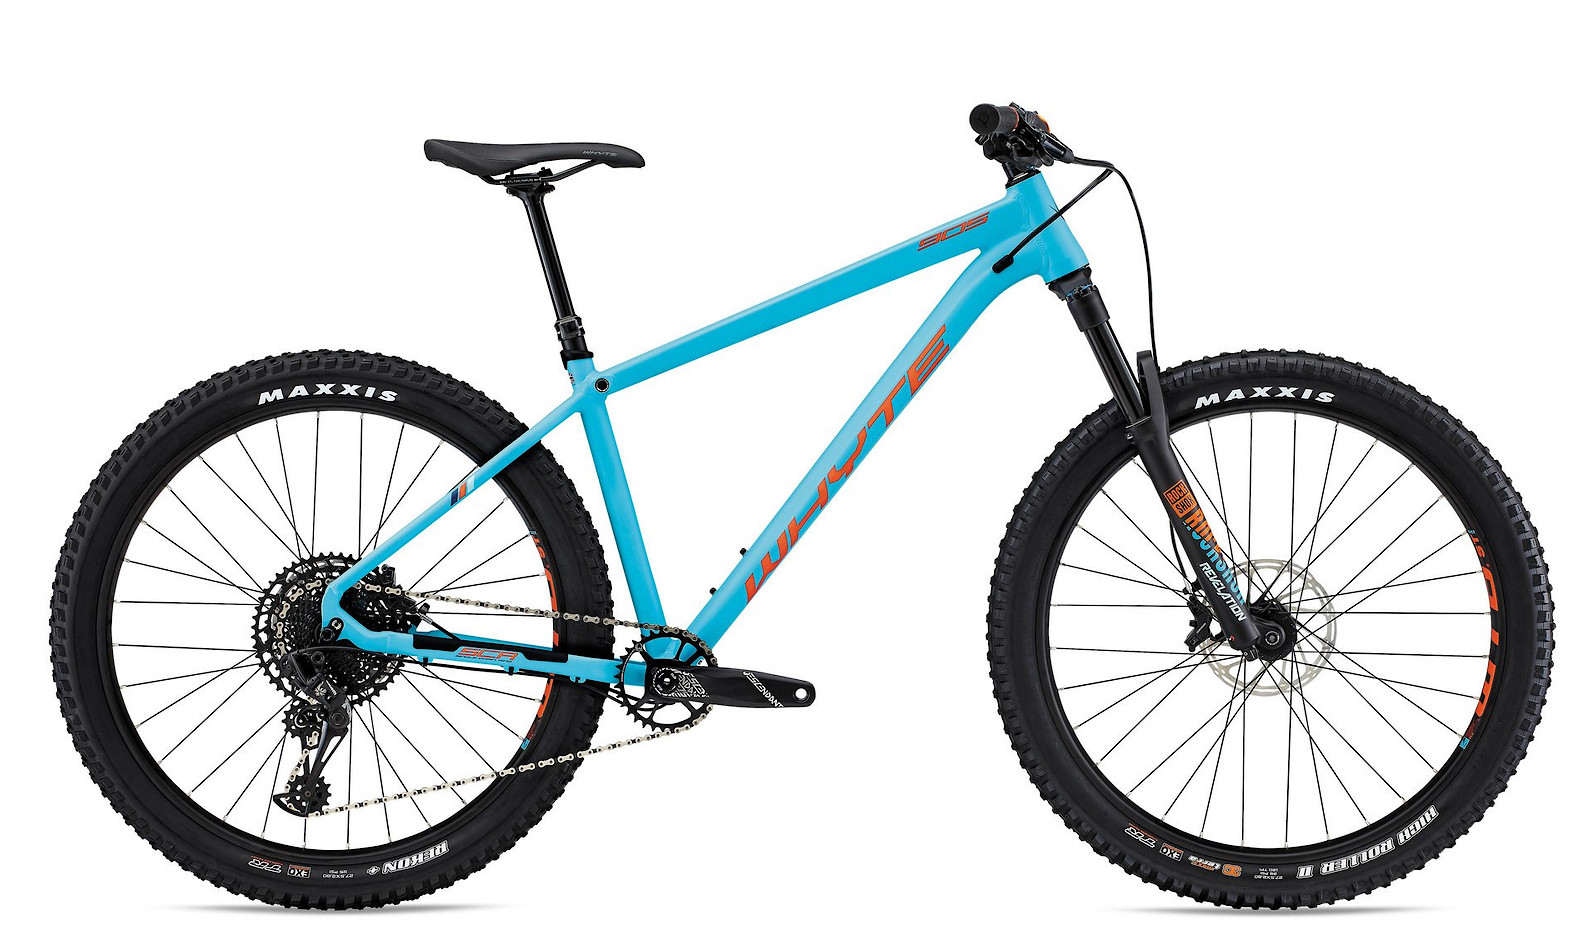 2019 Whyte 905 Bike